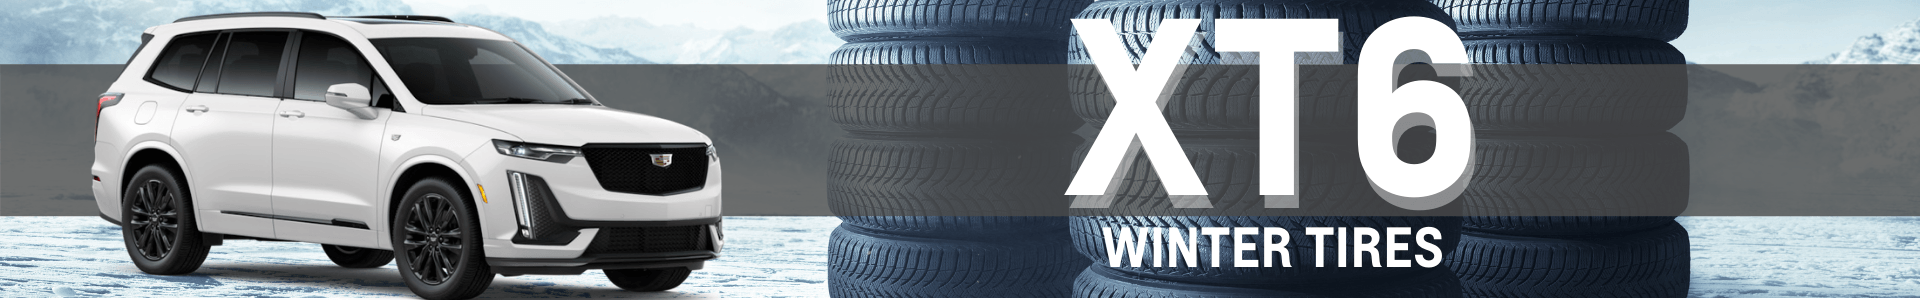 XT6 winter tire deals